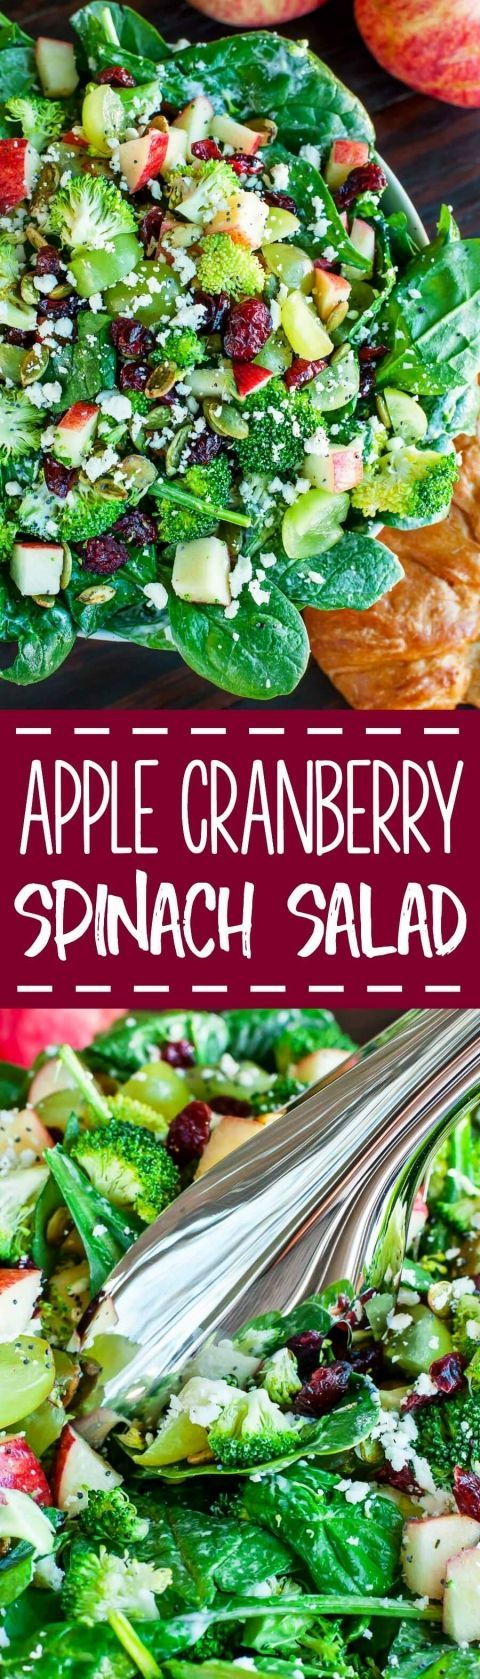 This colorful Apple Cranberry Spinach Salad with Broccoli and Feta is crisp, refreshing, and the perfect blend of savory sweet to enjoy all Fall and Winter long!